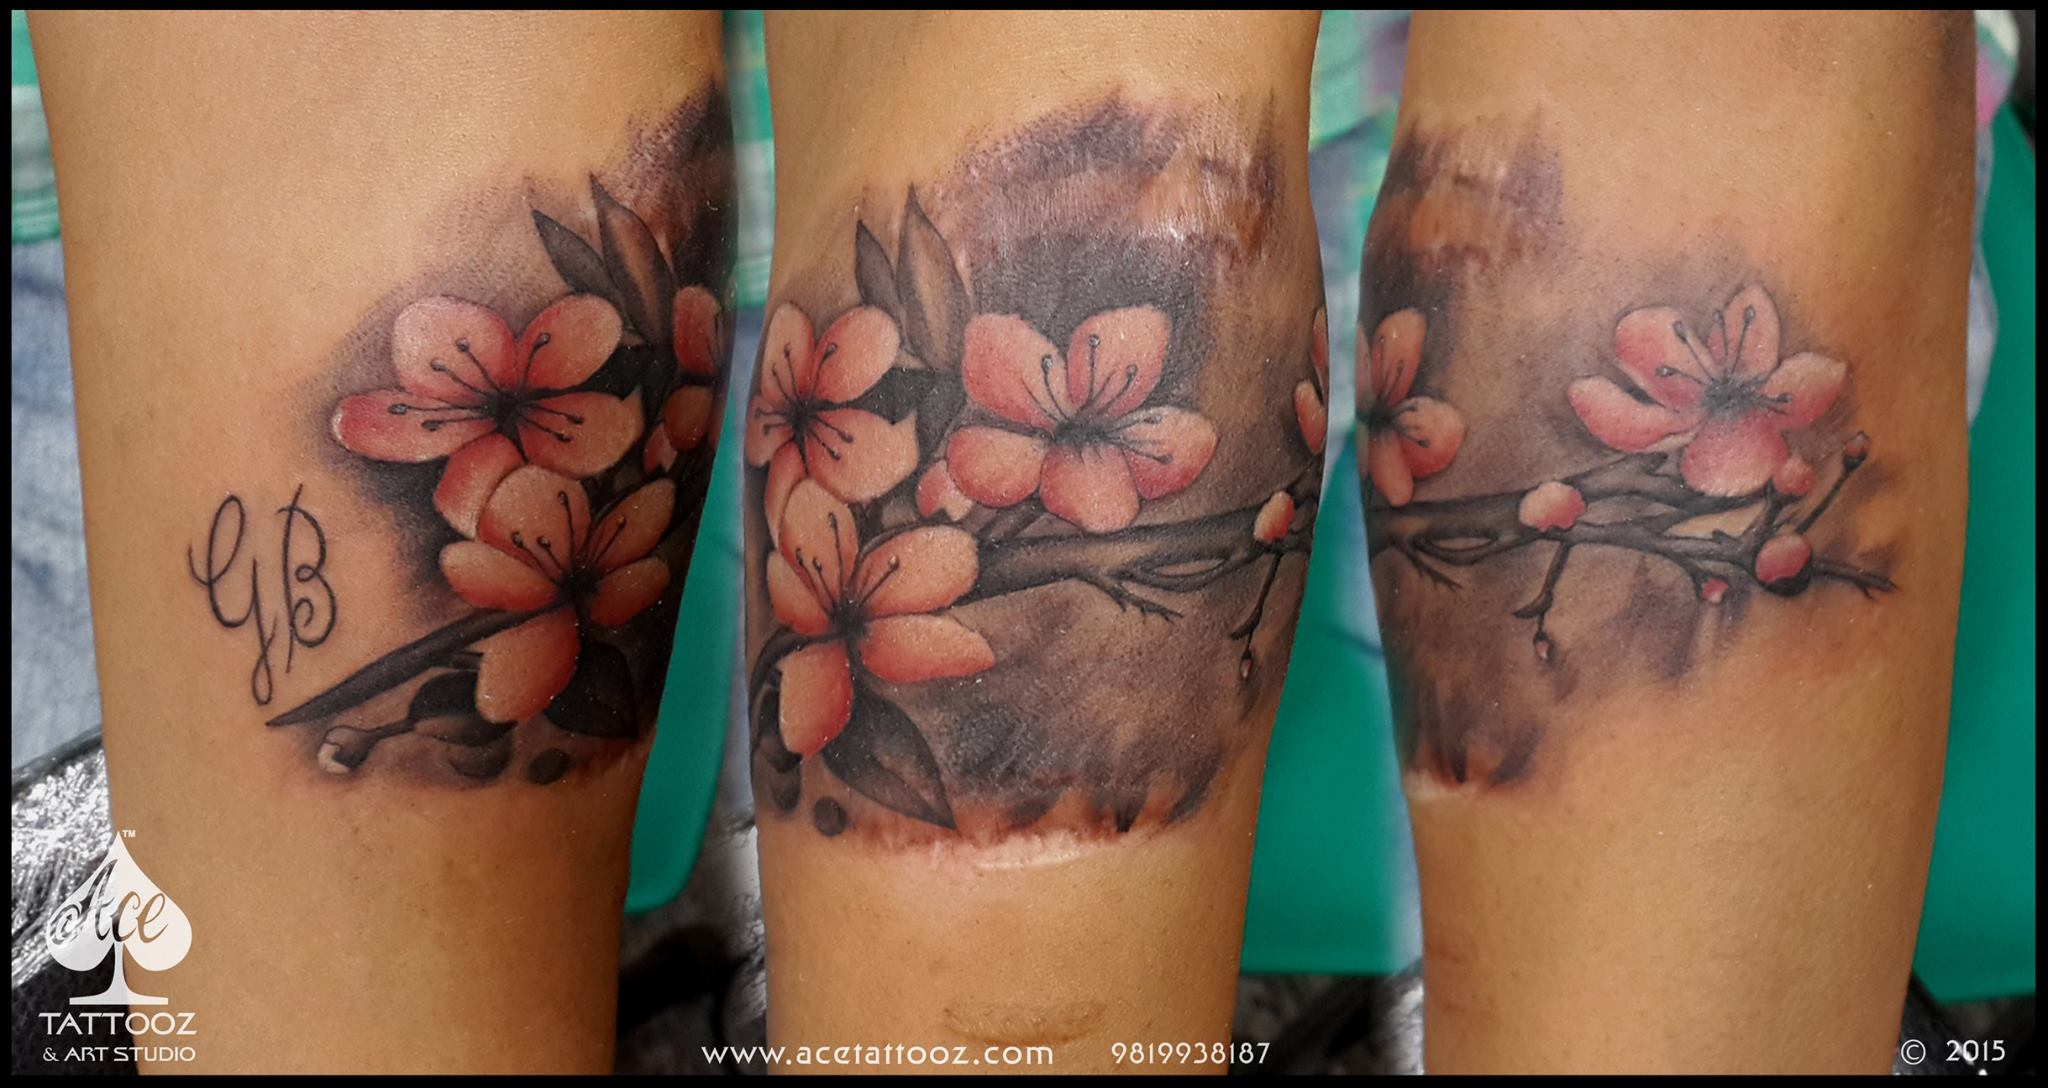 Scar cover up tattoo with flowers ace tattooz for Scar tattoo cover up